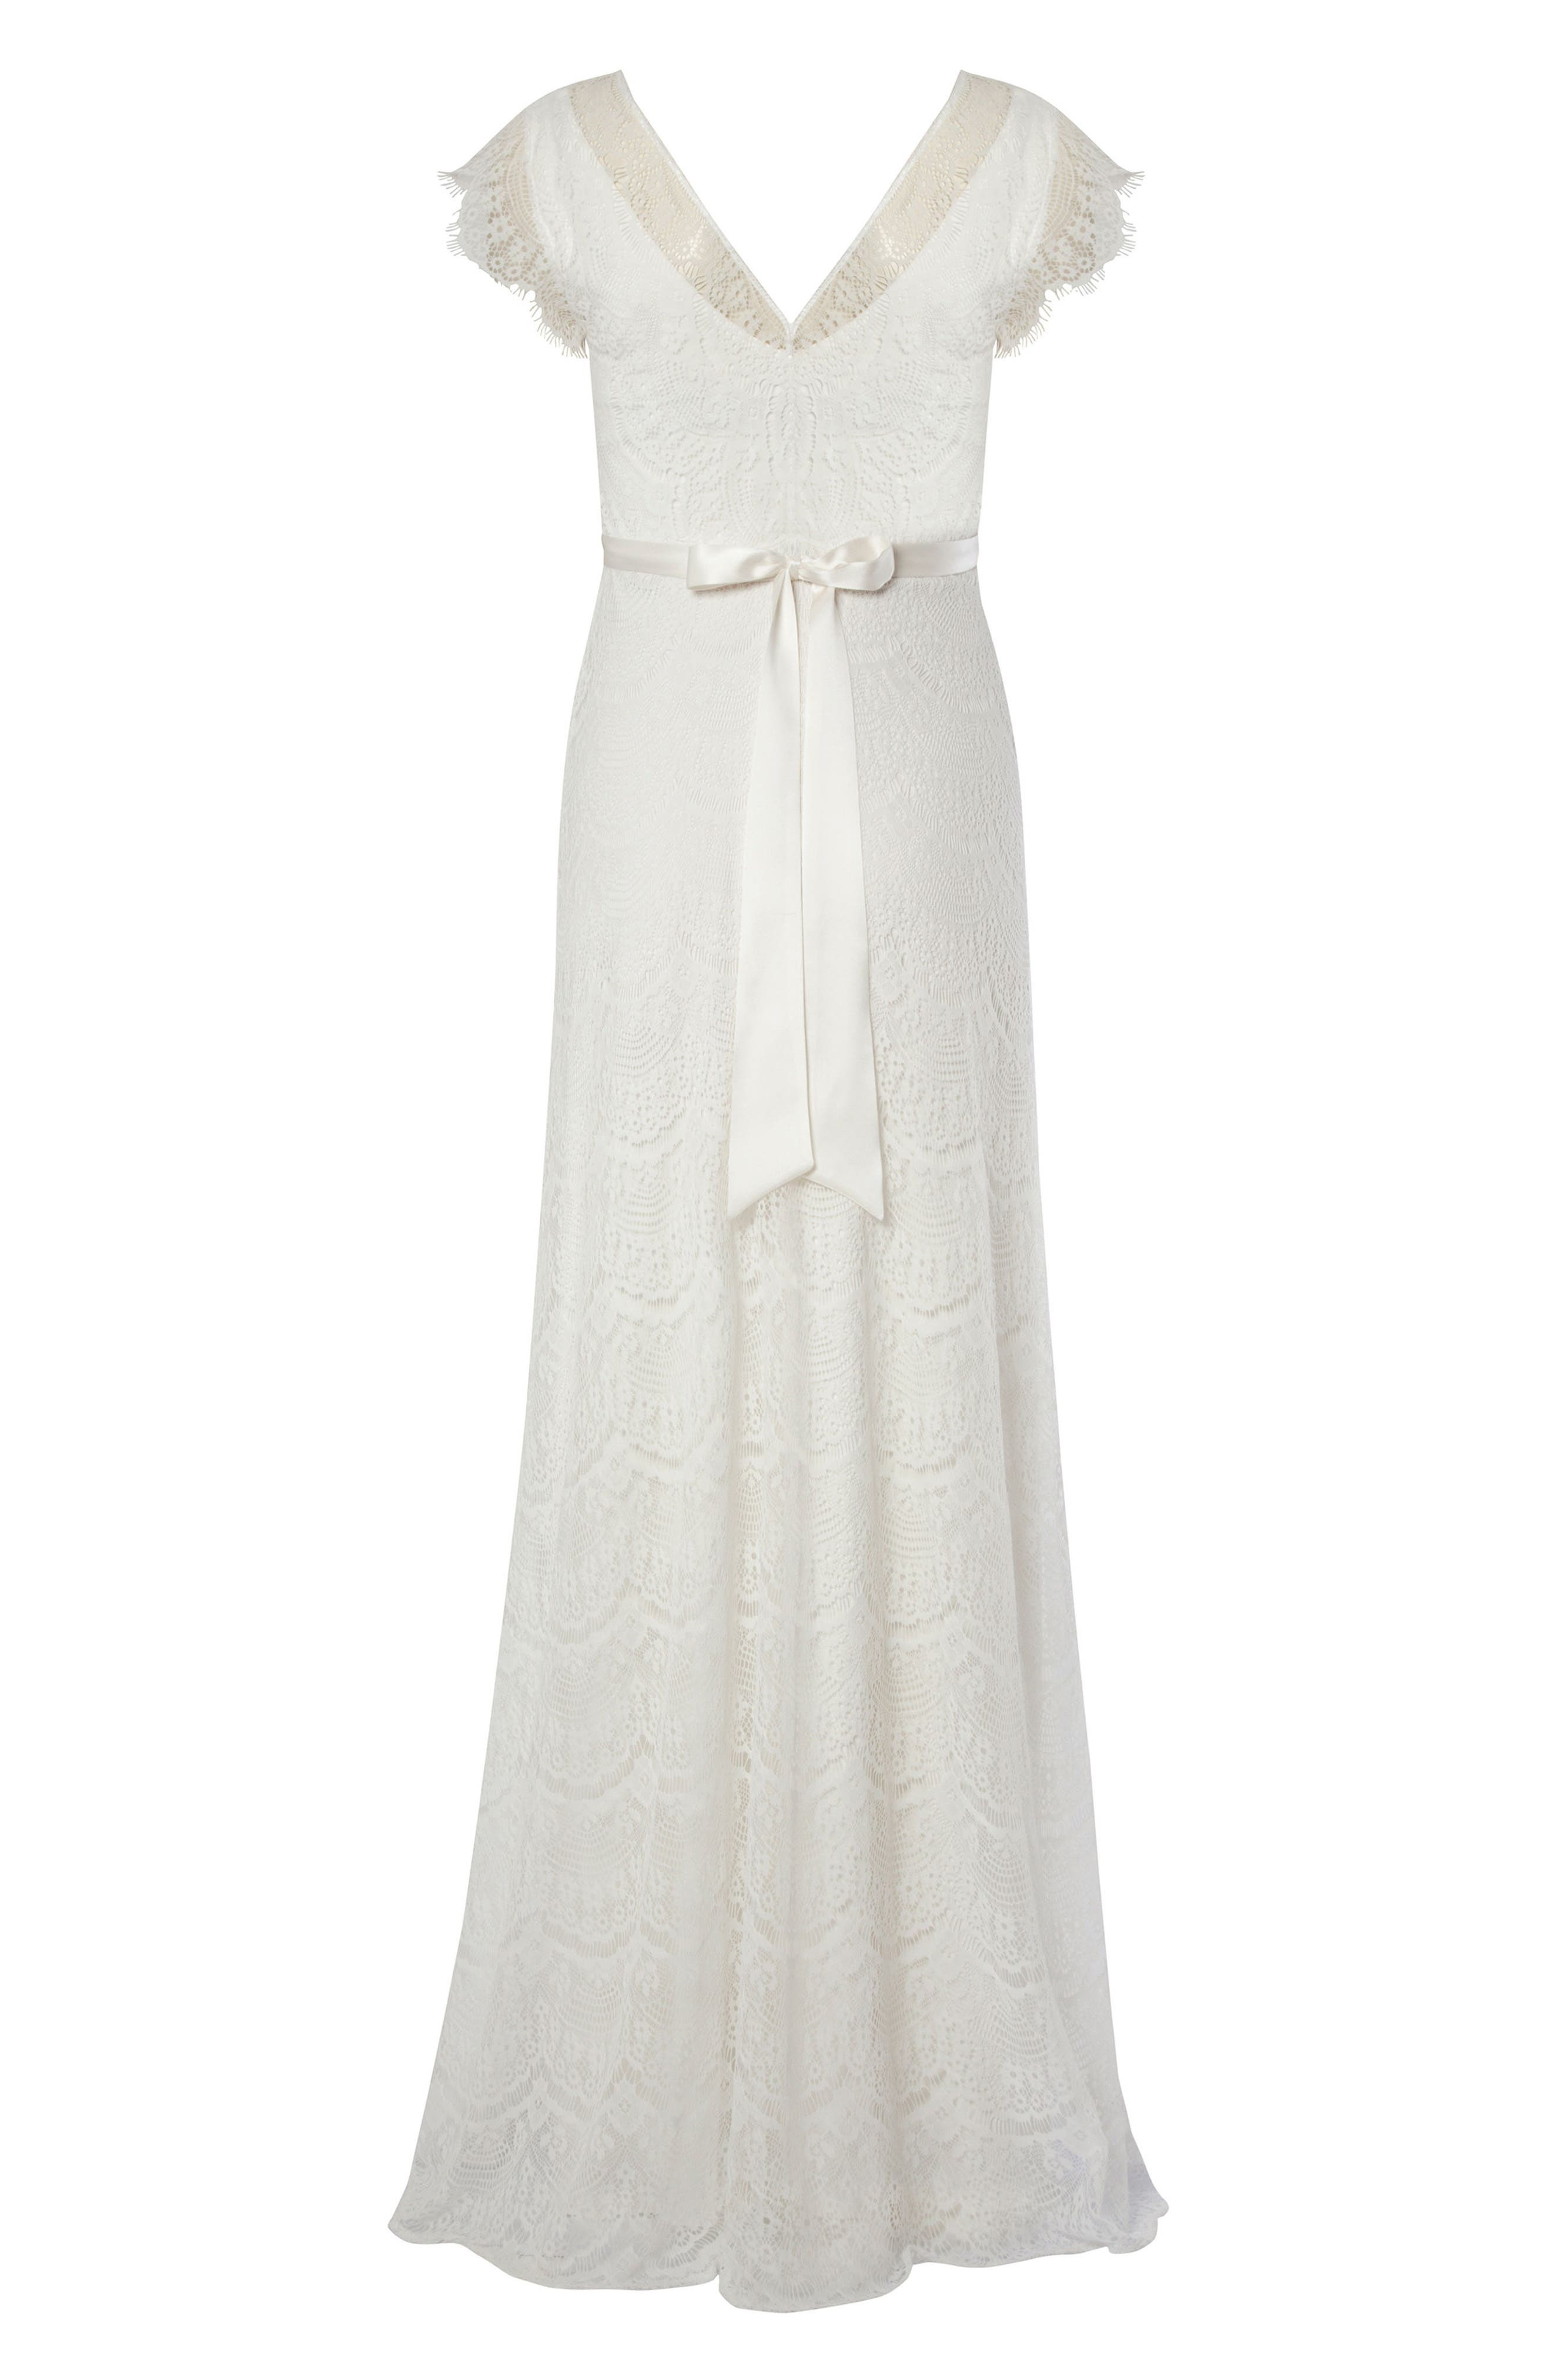 Kristin Long Lace Maternity Gown,                             Alternate thumbnail 2, color,                             IVORY